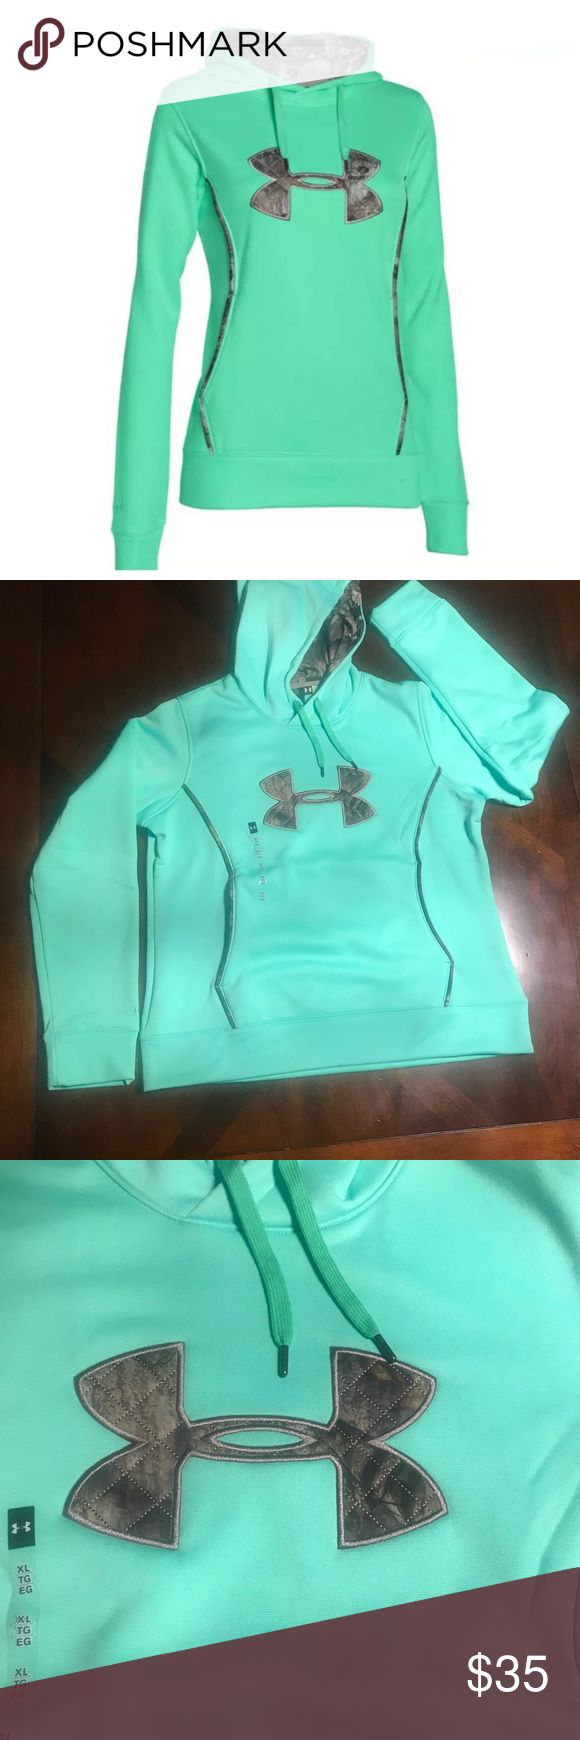 """UA Mint Green Women's Camo Hoodie Under Armour Women's water resistant 💦💧 Storm Style  Color: Mint Green  Hand Warmer Kangaroo pocket with camo piping detail  Camouflage hoodie  Size XL armpit to armpit 22"""" Length from top shoulder to bottom waist hem 26.5"""" Fleece fabric  Adjustable 3pc hood with crossover neck and pop color lining   **this color is a beauty**😍 Under Armour Tops Sweatshirts & Hoodies"""